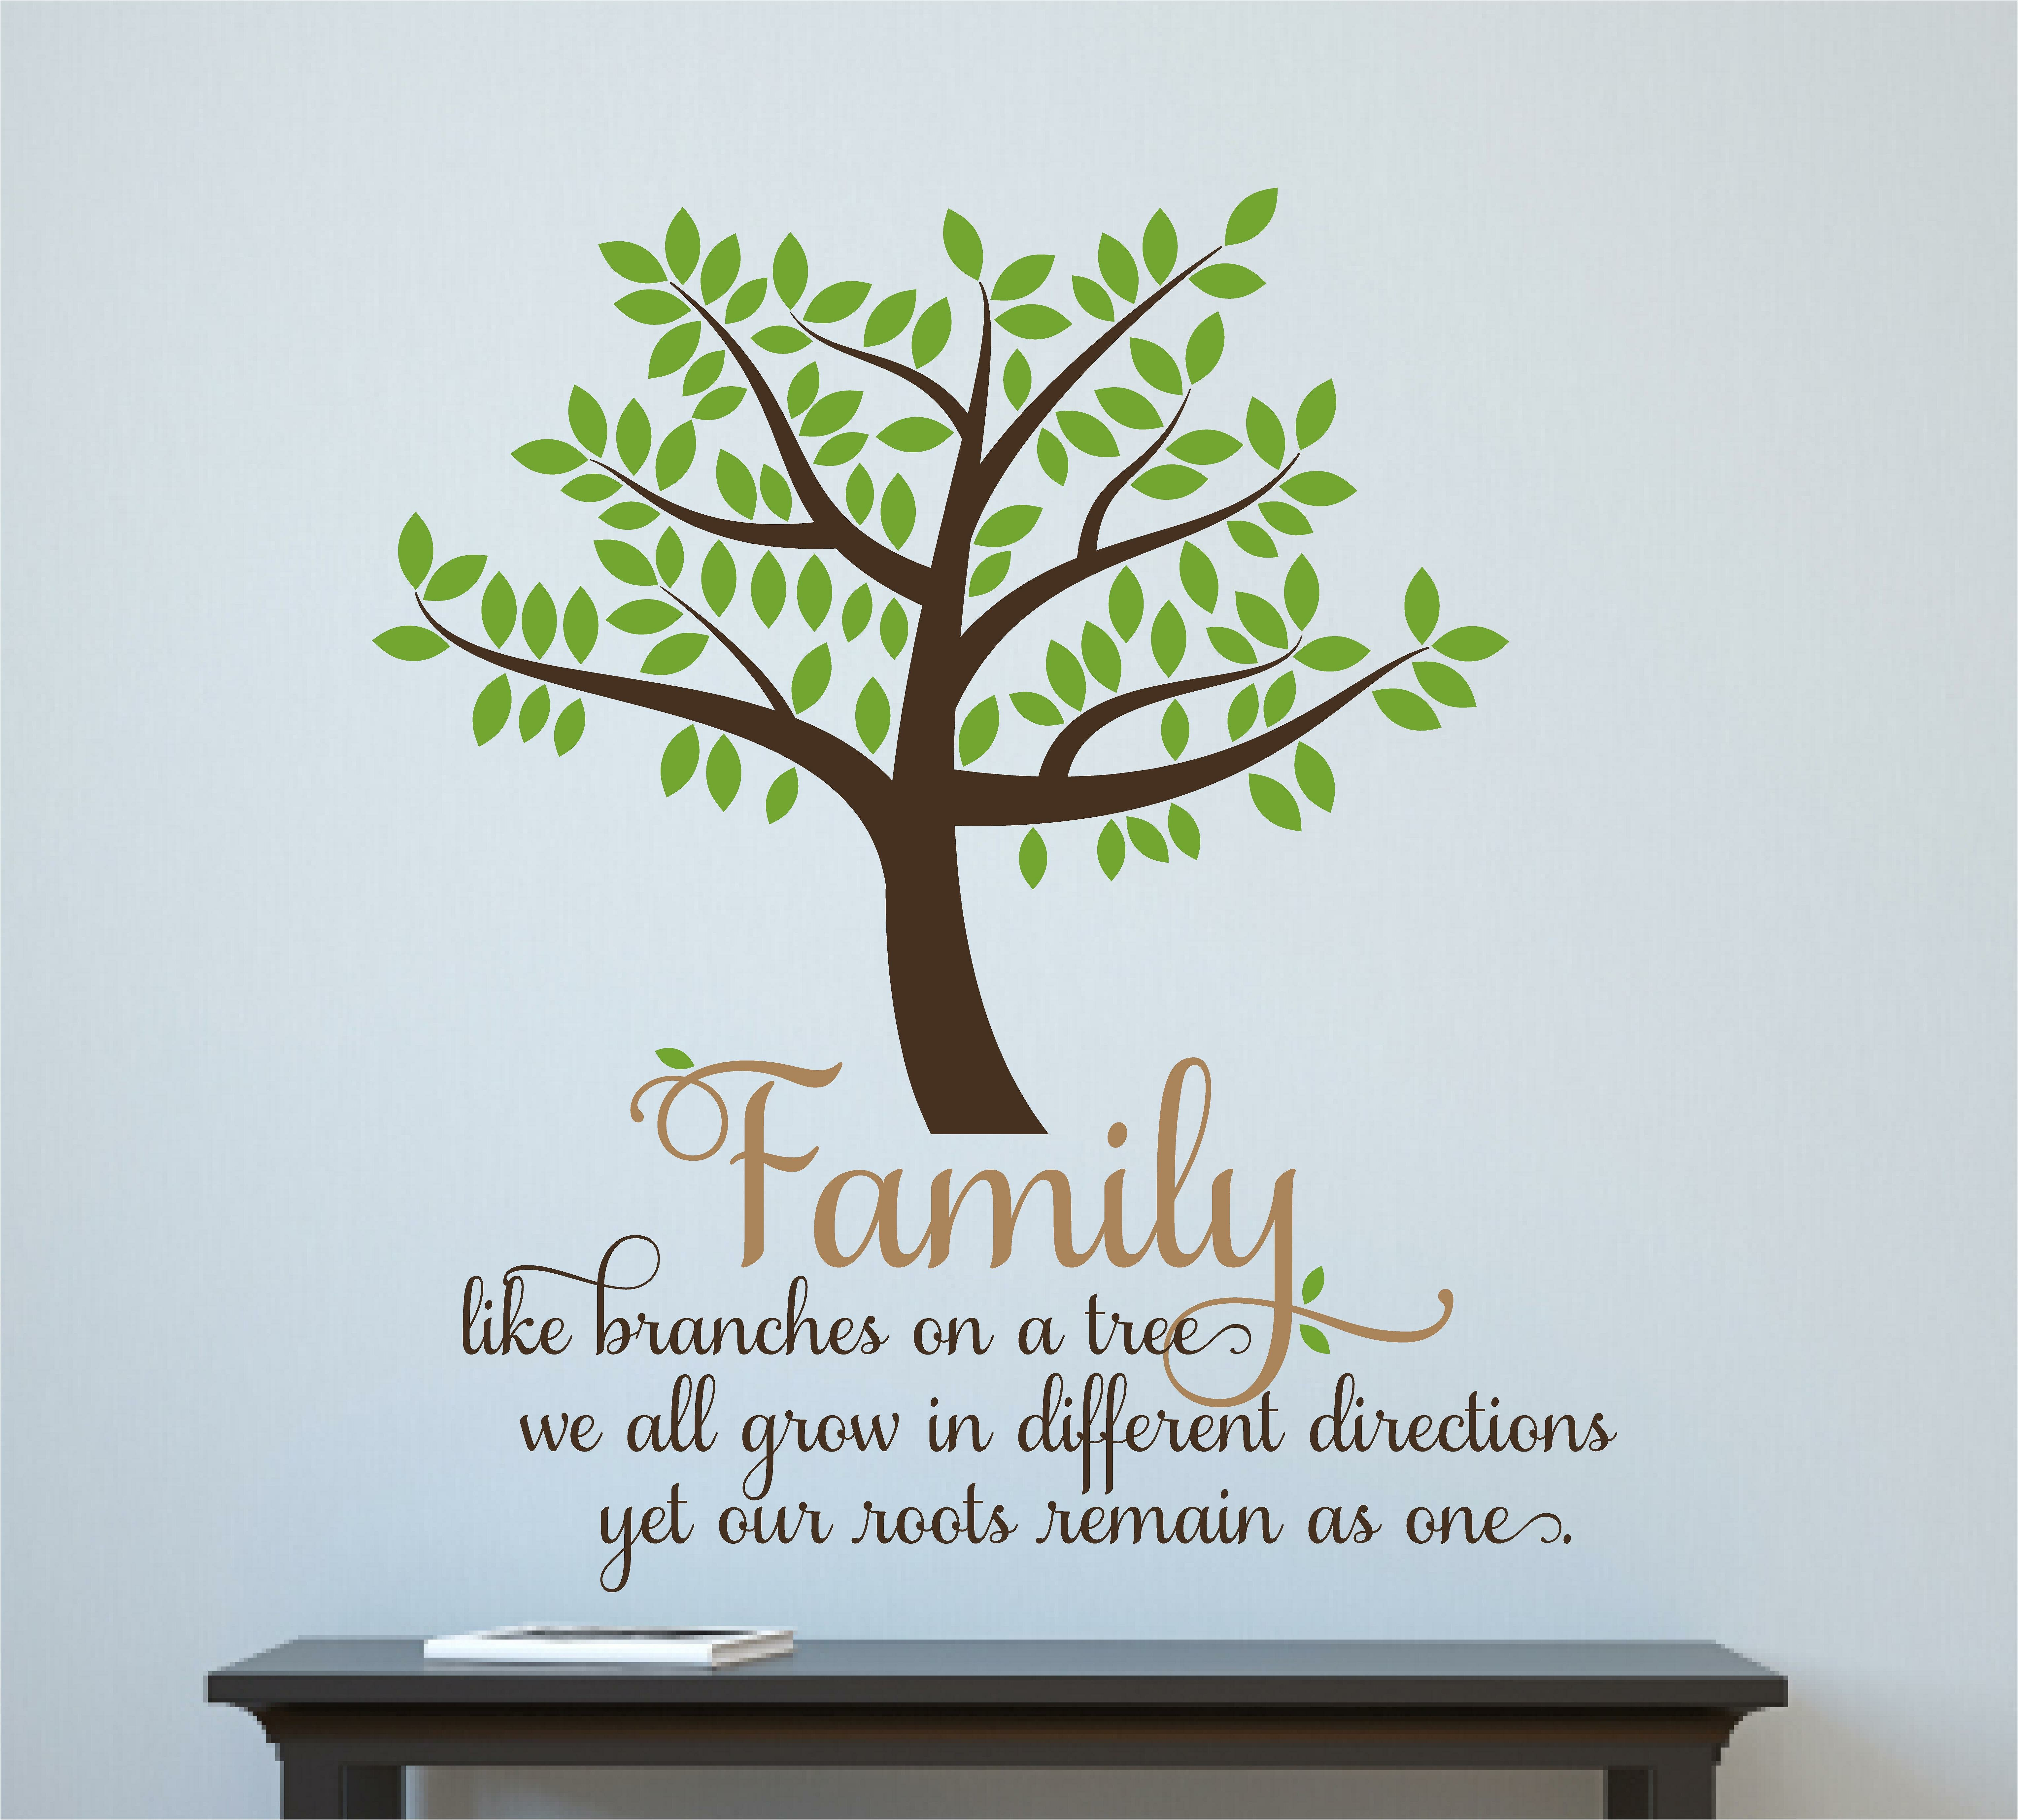 Enchantingly Elegant 'Family Like Branches on a Tree' Vinyl Letters Words  Home Wall Decal | Wayfair